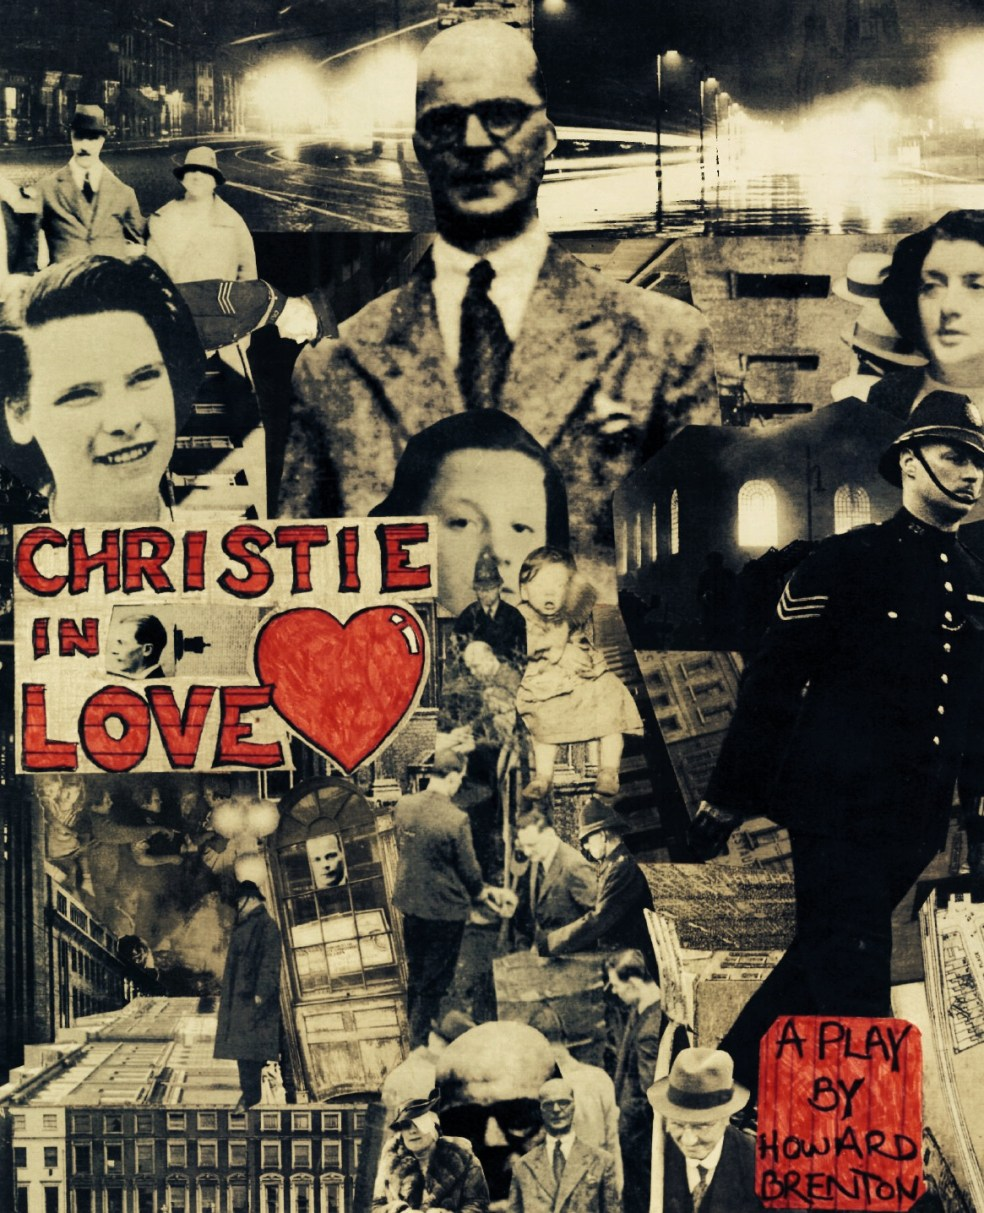 Christie In Love Artwork by Si Cook